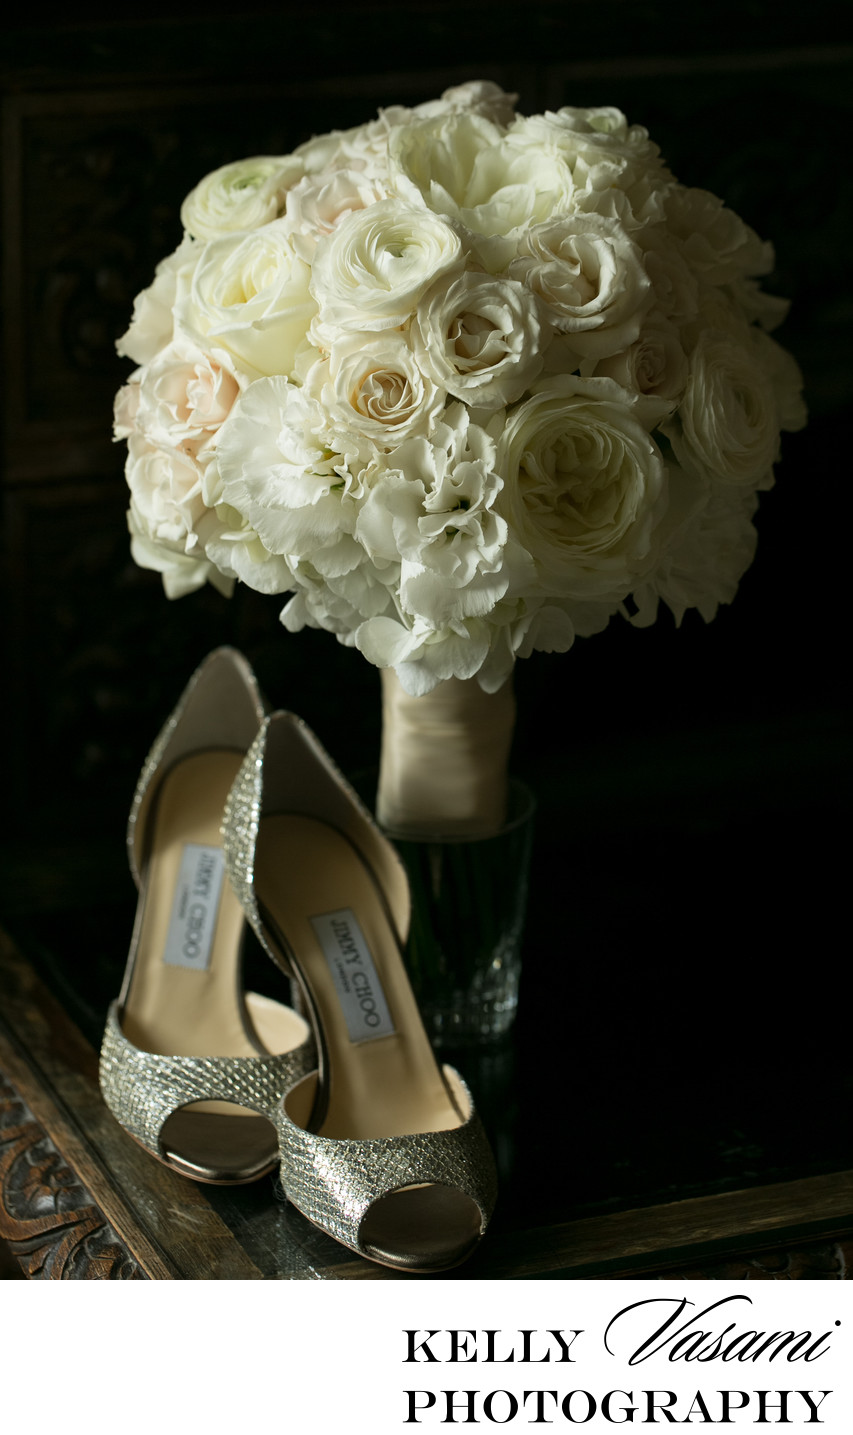 jimmy choo shoes and white wedding flowers